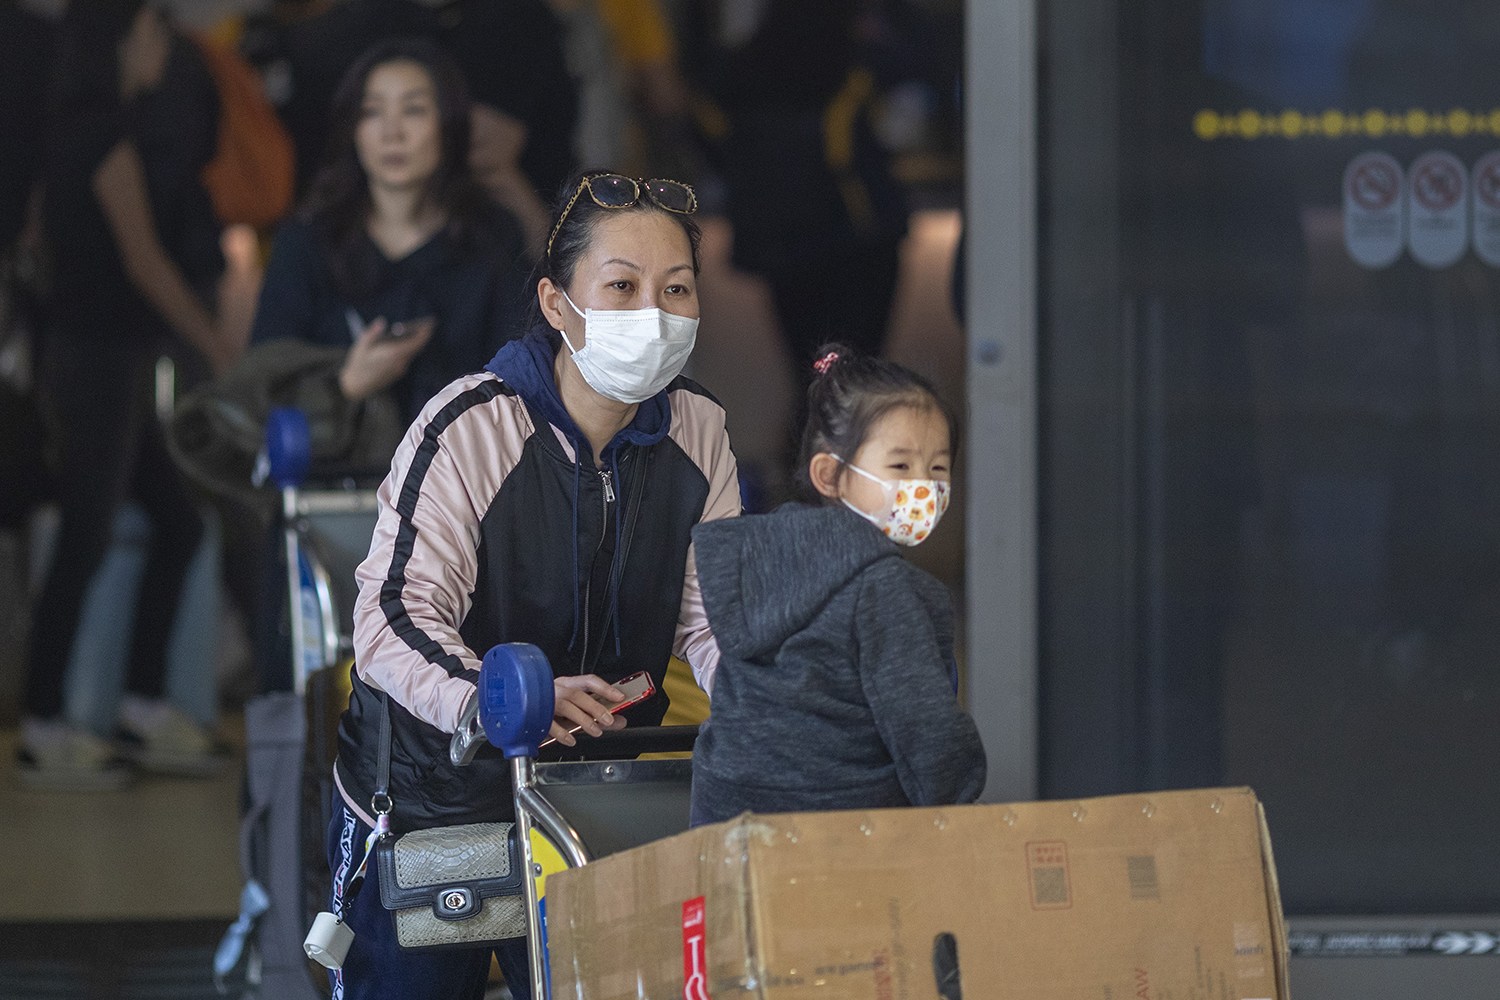 Health Experts Say Wuhan Virus Could Be Pandemic